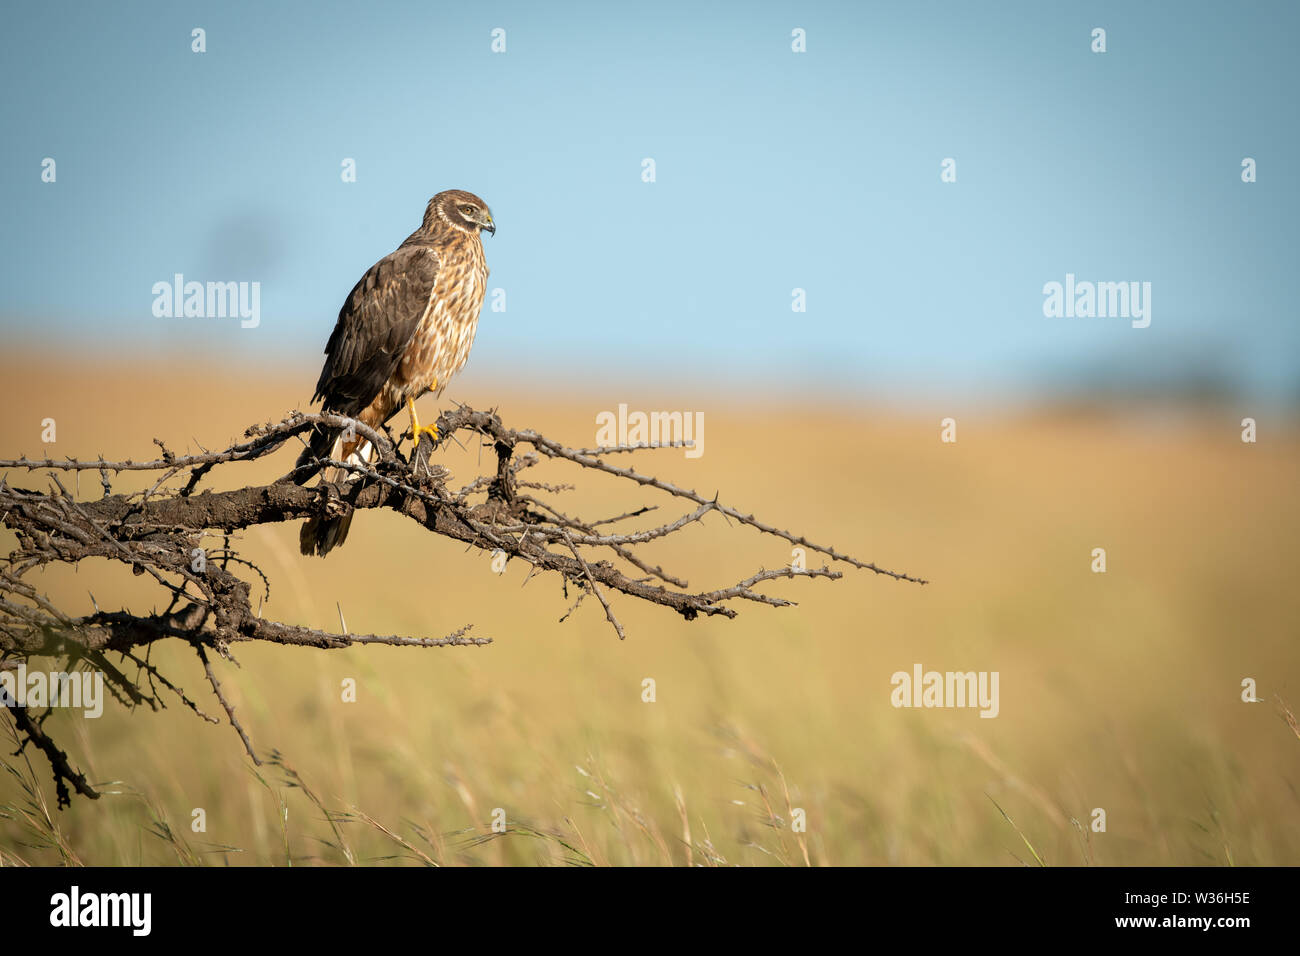 African marsh harrier perched on dead branch - Stock Image